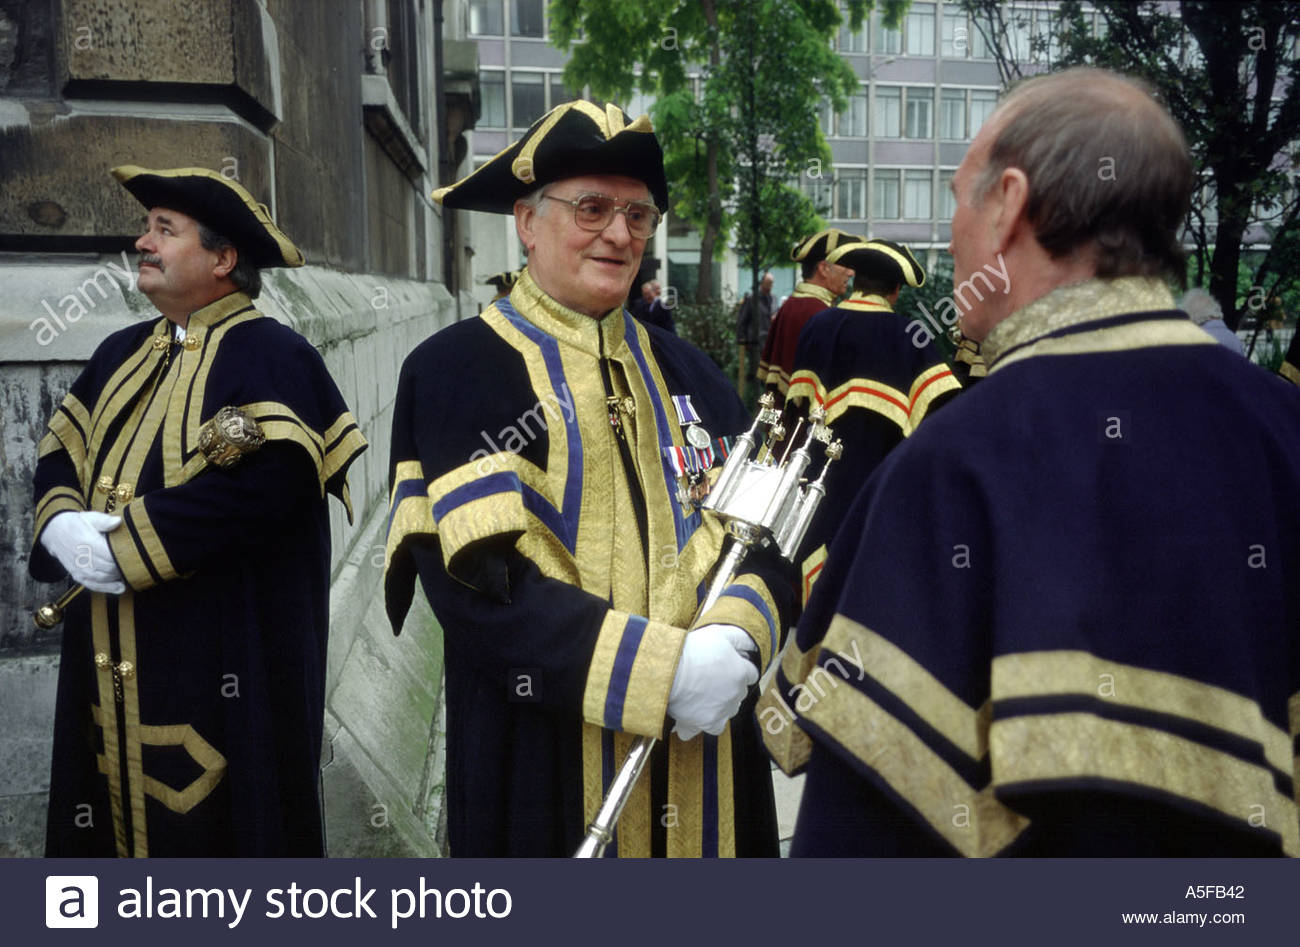 City Guild members in livery at the annual ceremony for the inauguration of the Lord Mayor of London - Stock Image